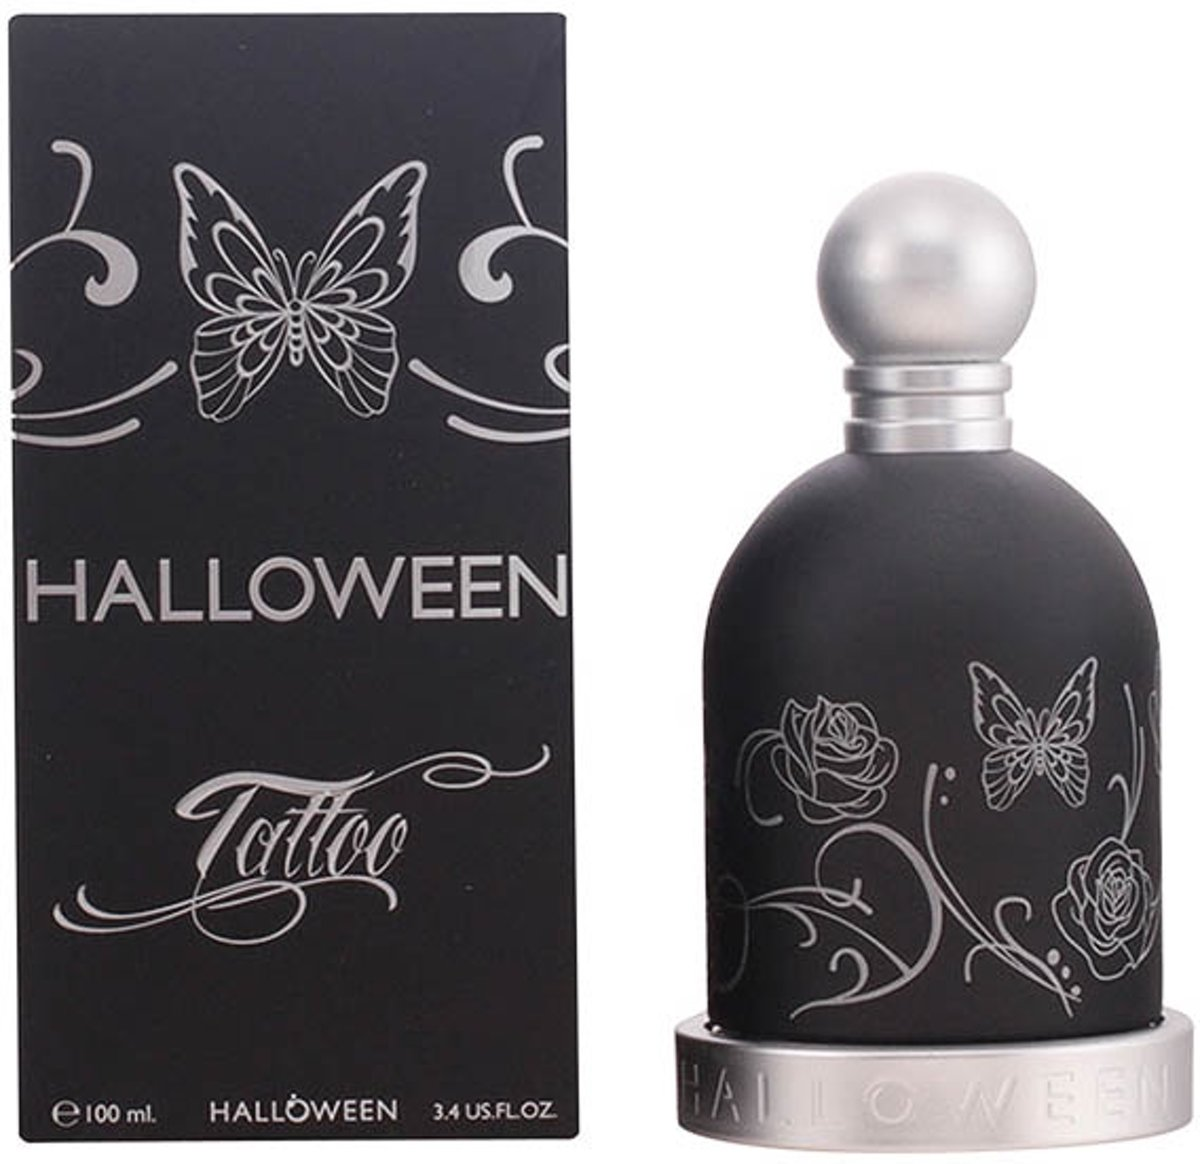 Jesus Del Pozo Halloween Tattoo Women EDT 100 ml